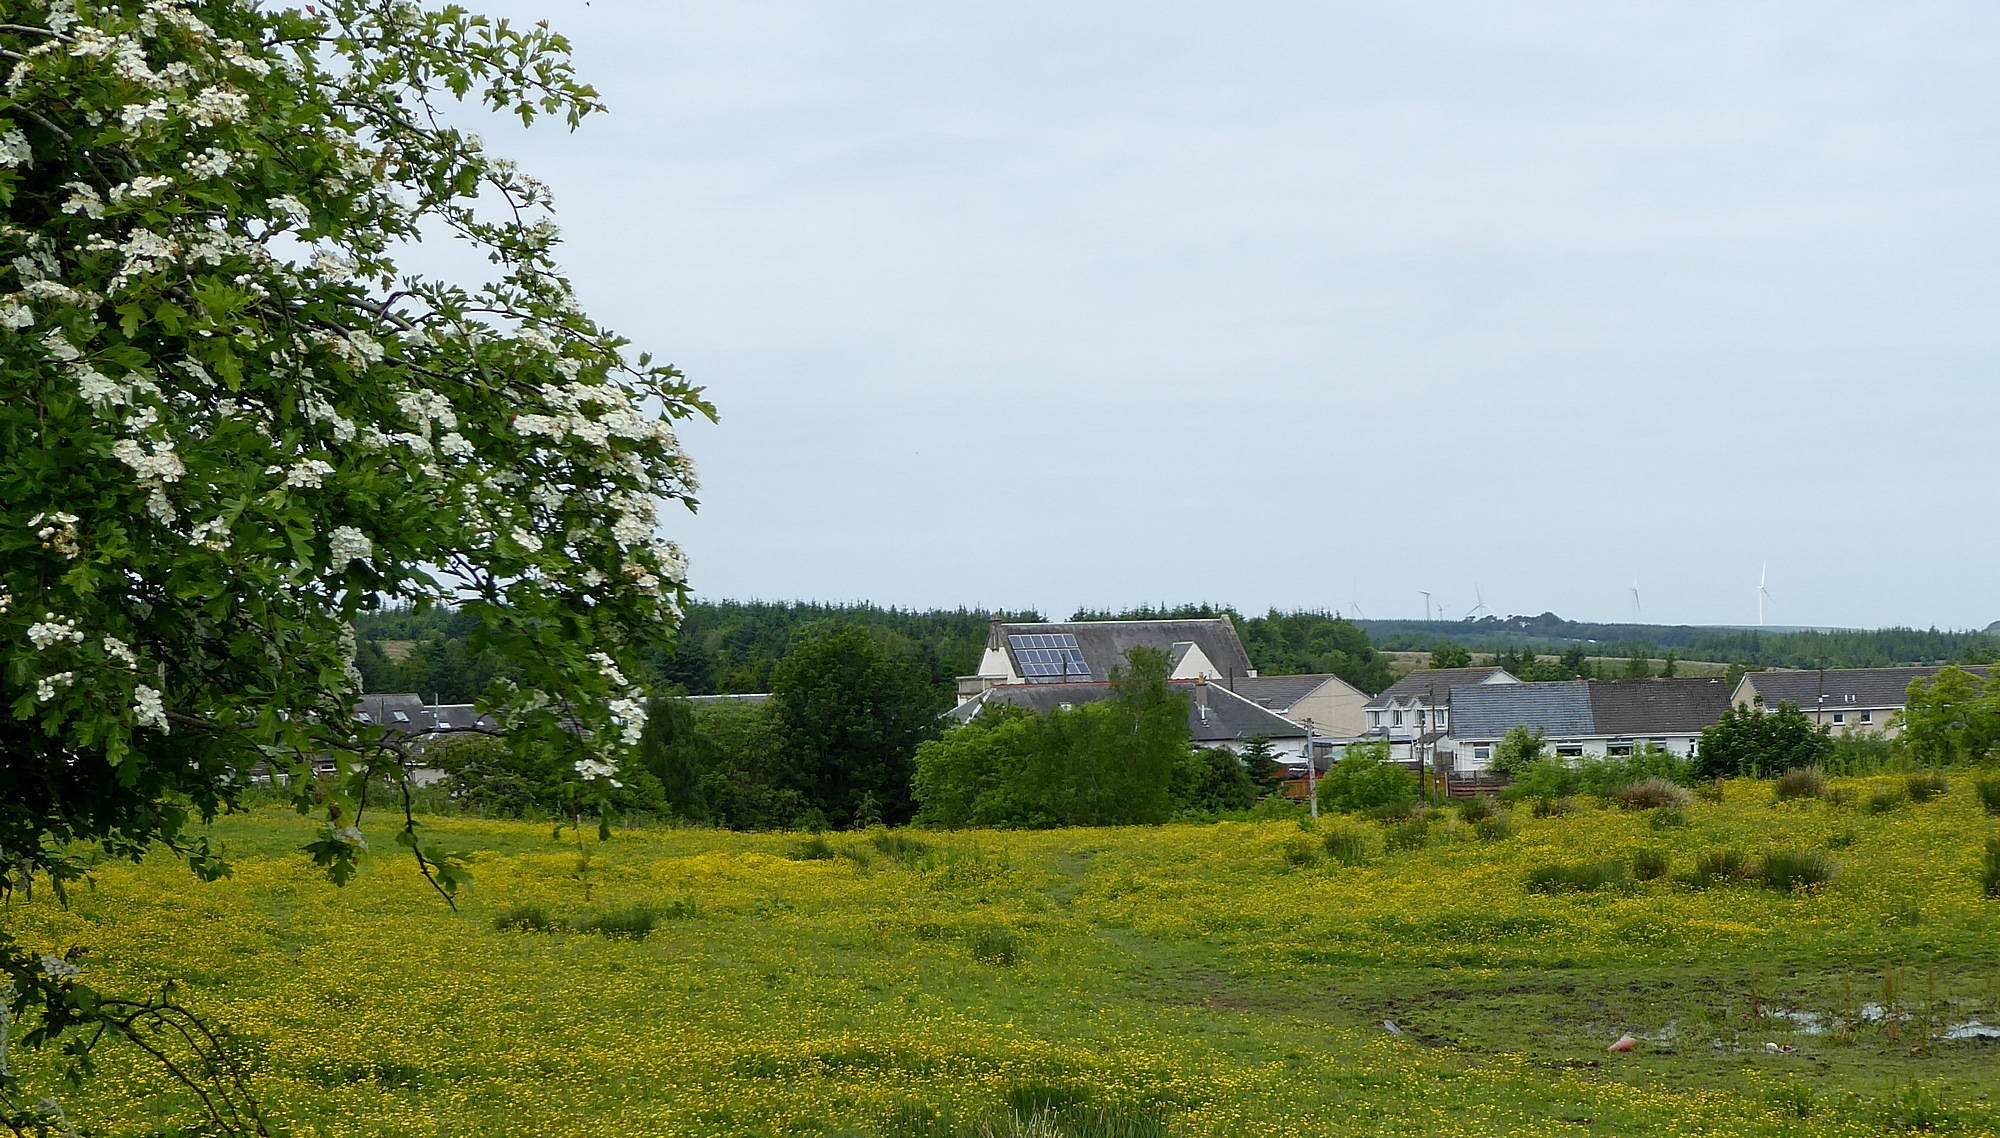 View from path of Miners' Welfare Building across buttercup field. 8th June 2018